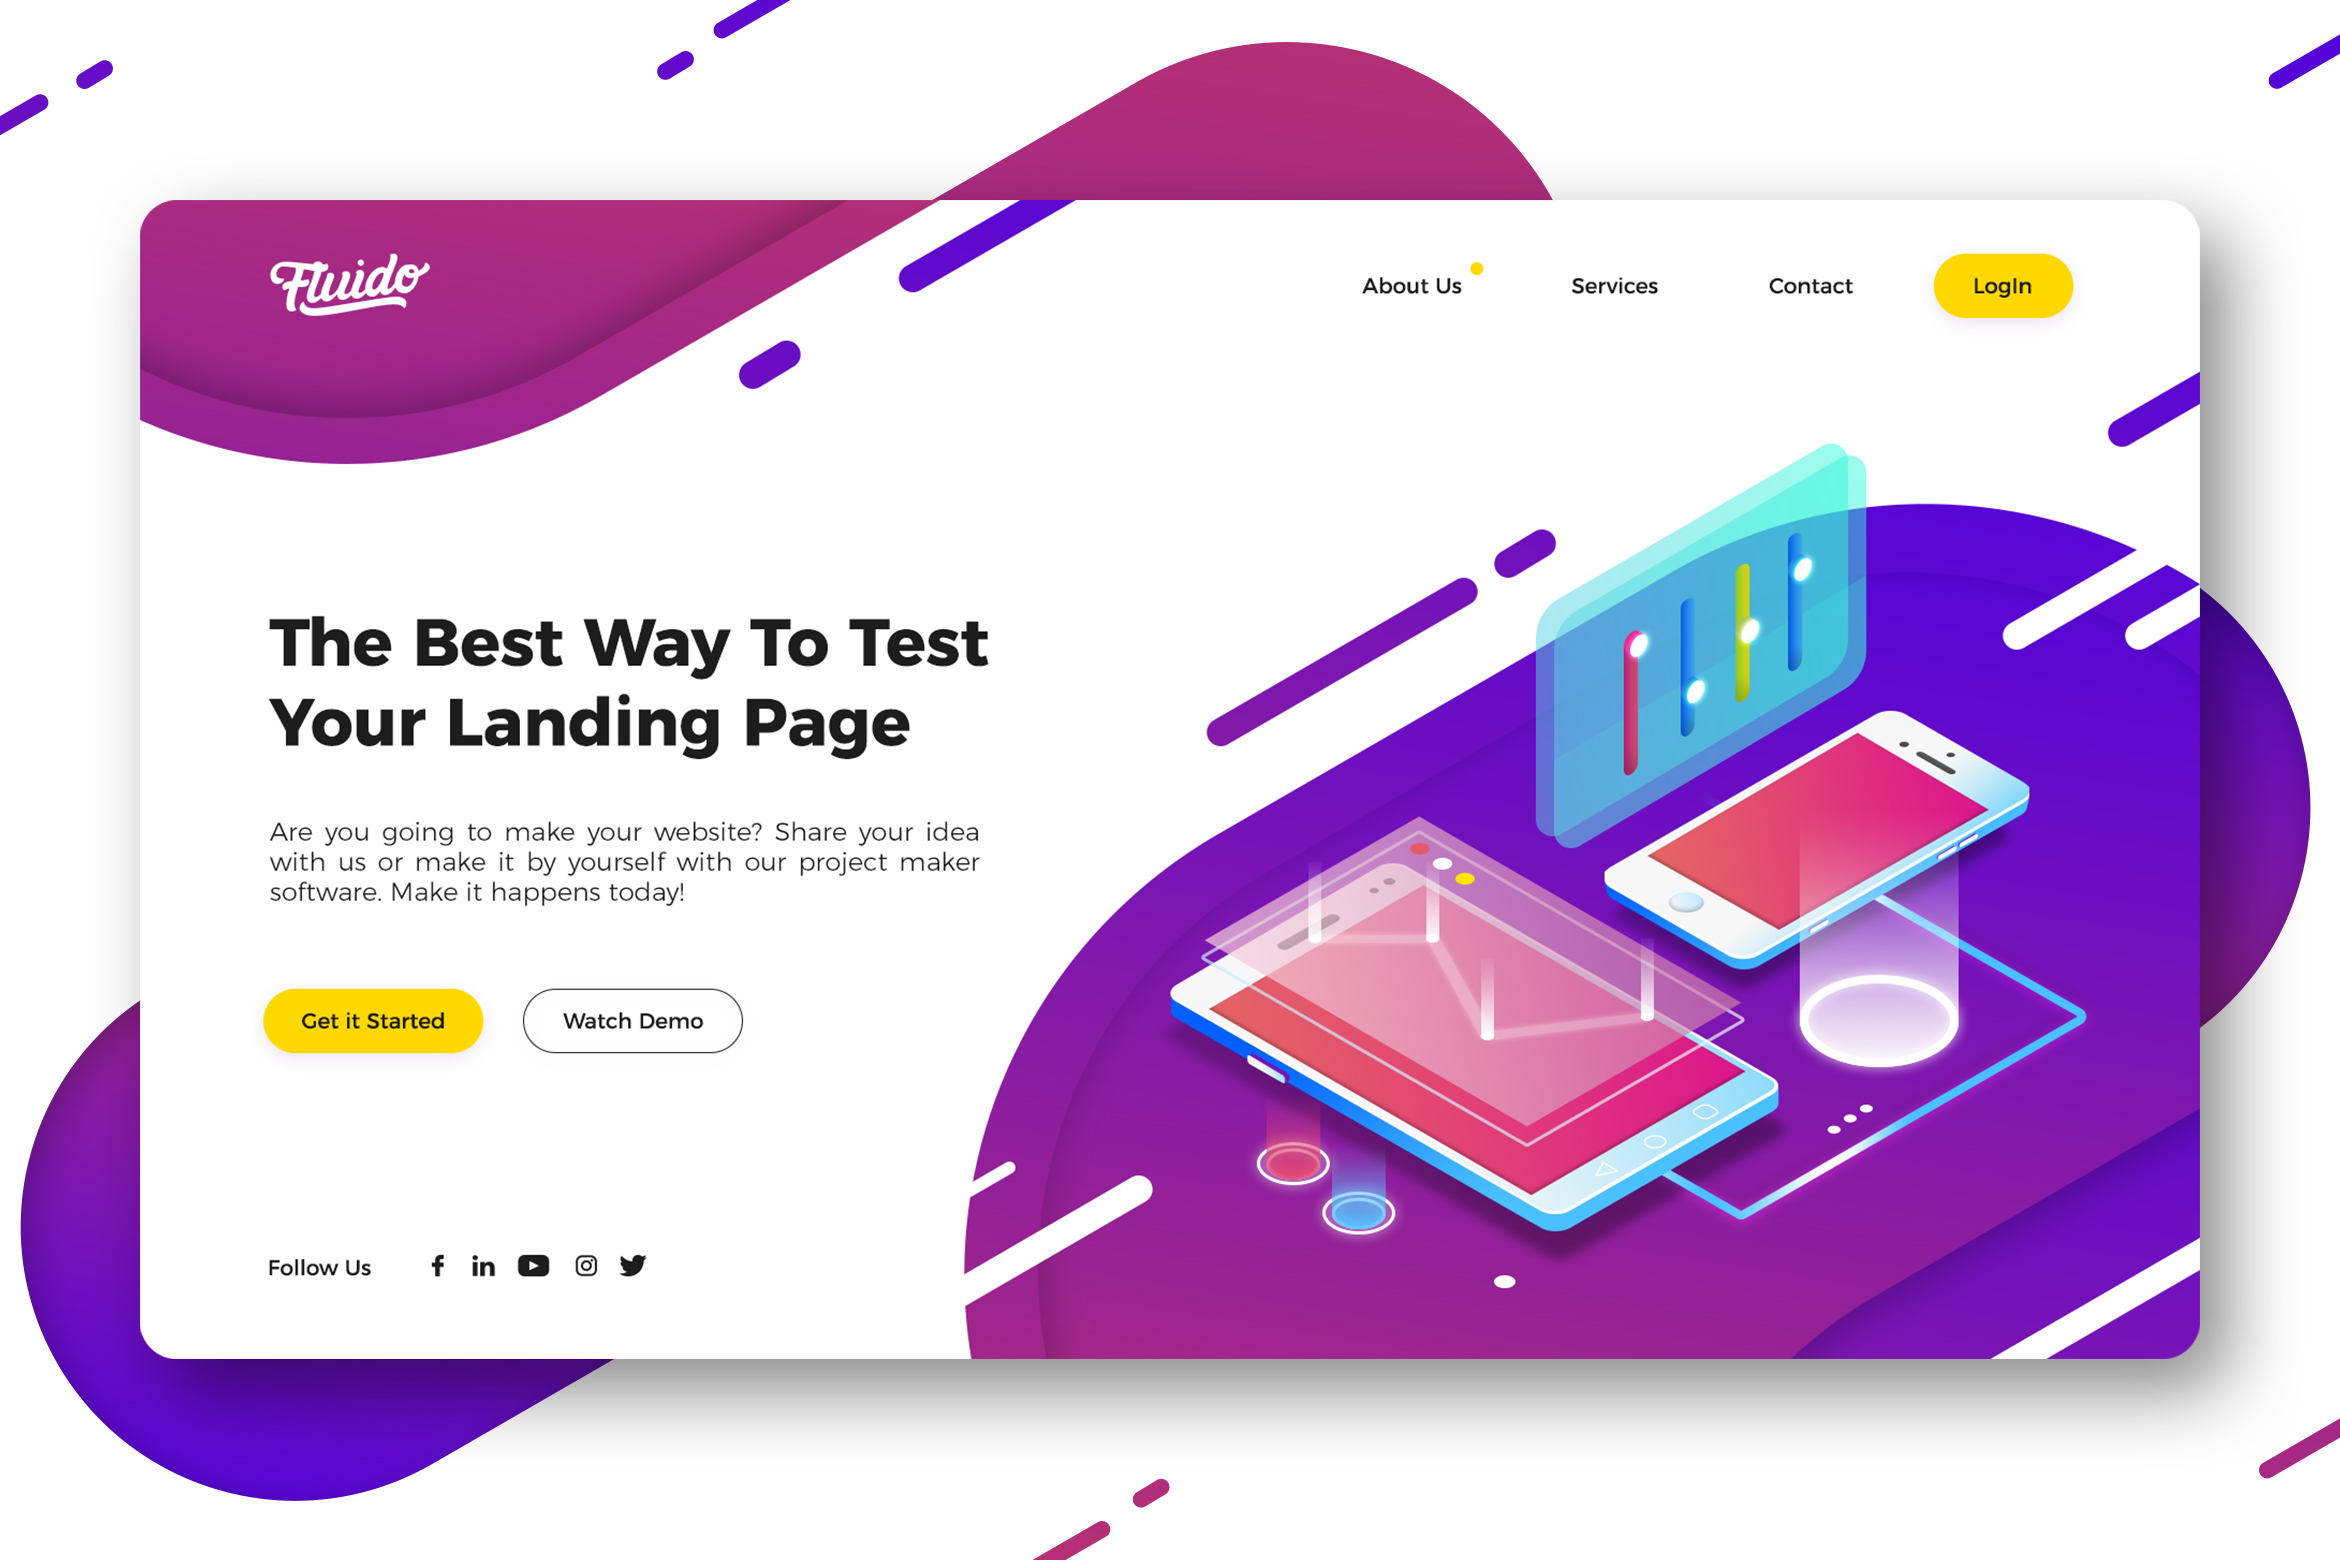 WEB端个性官网网页设计UI设计 Technology website hero header template